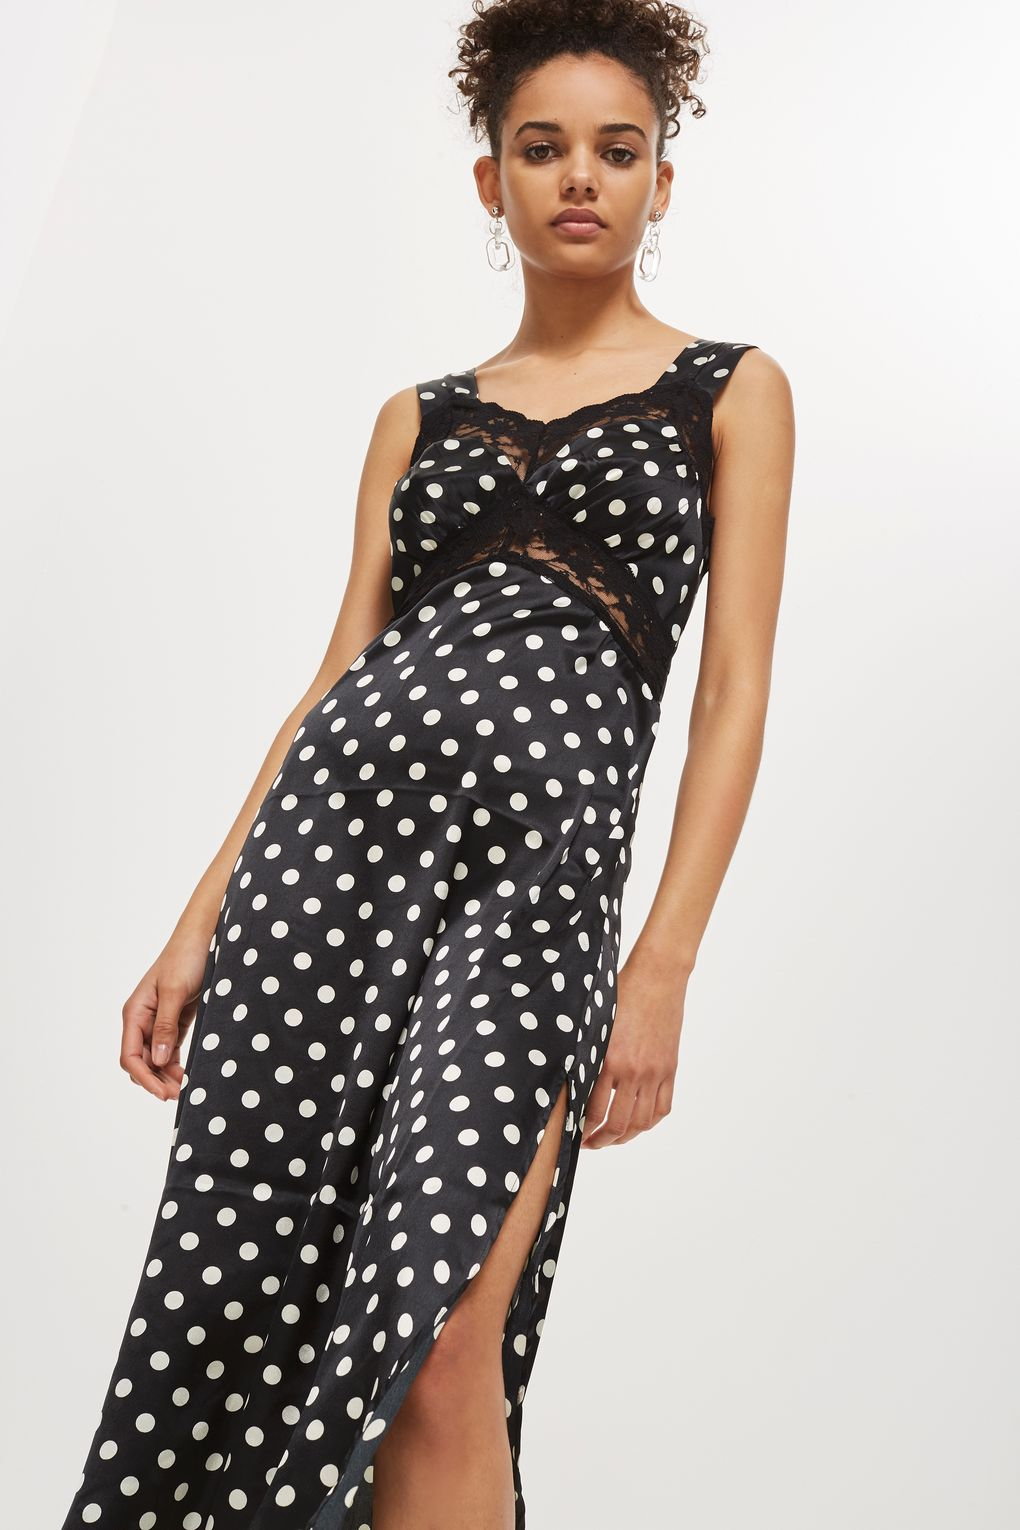 Topshop Polka Dot Satin Slip Dress.jpg